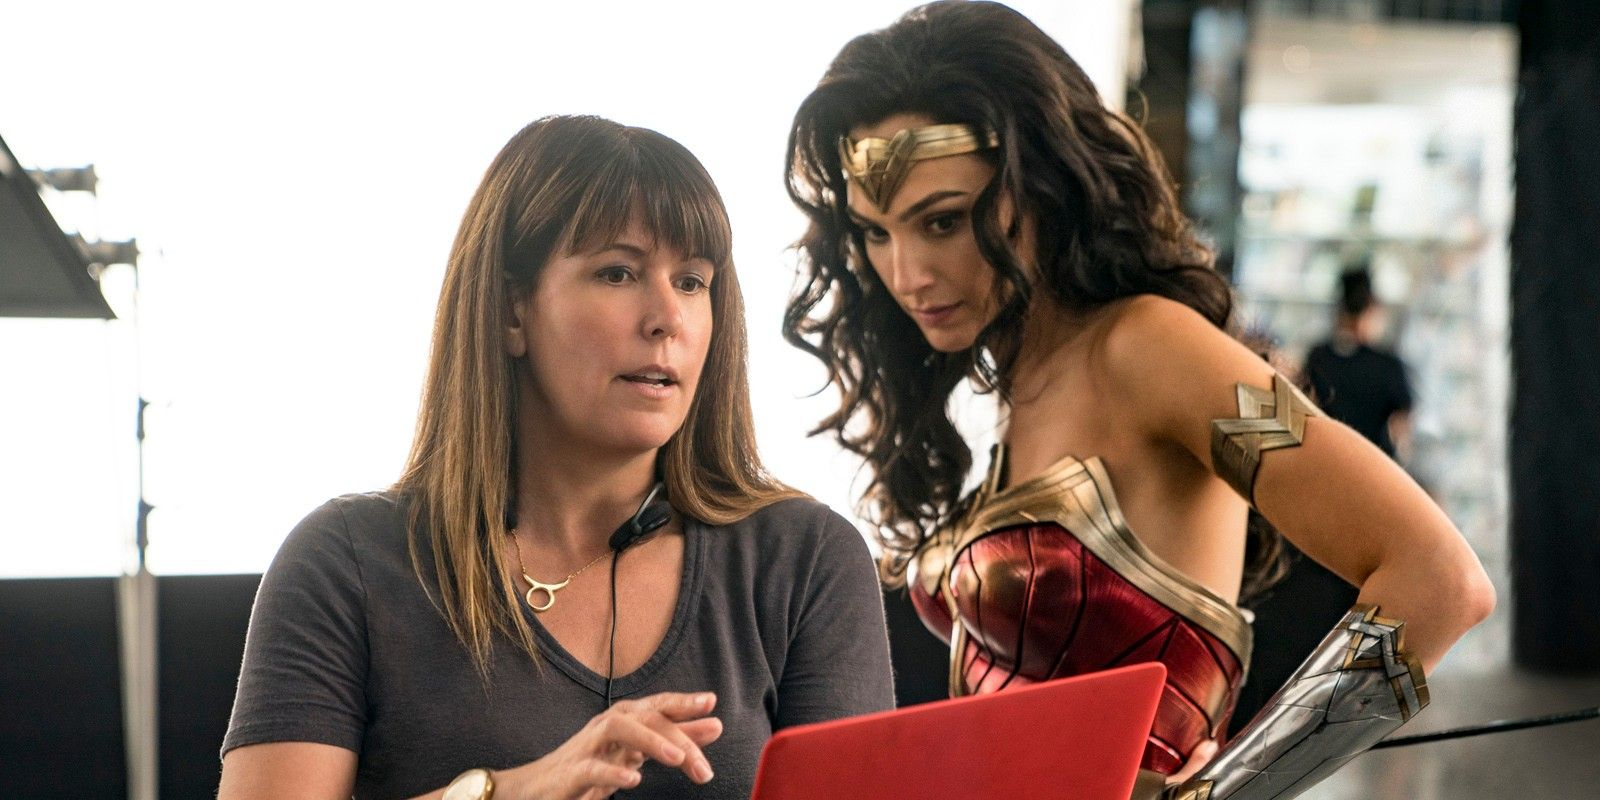 Wonder Woman 1984 Director Almost Passed on Sequel Over Pay Discrepancy